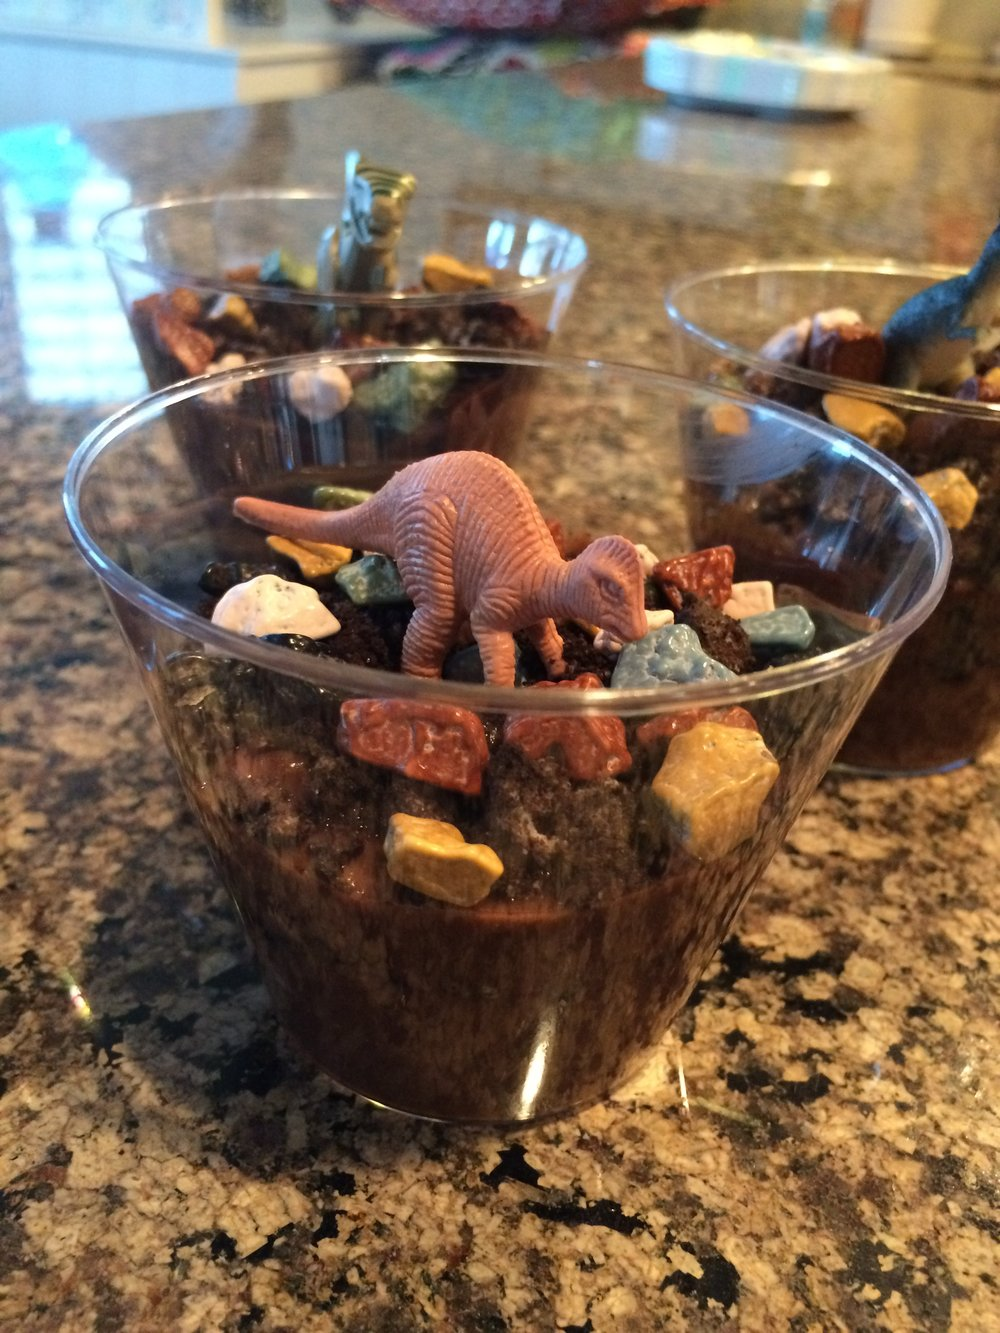 Dino dirt cups for  The Good Dinosaur